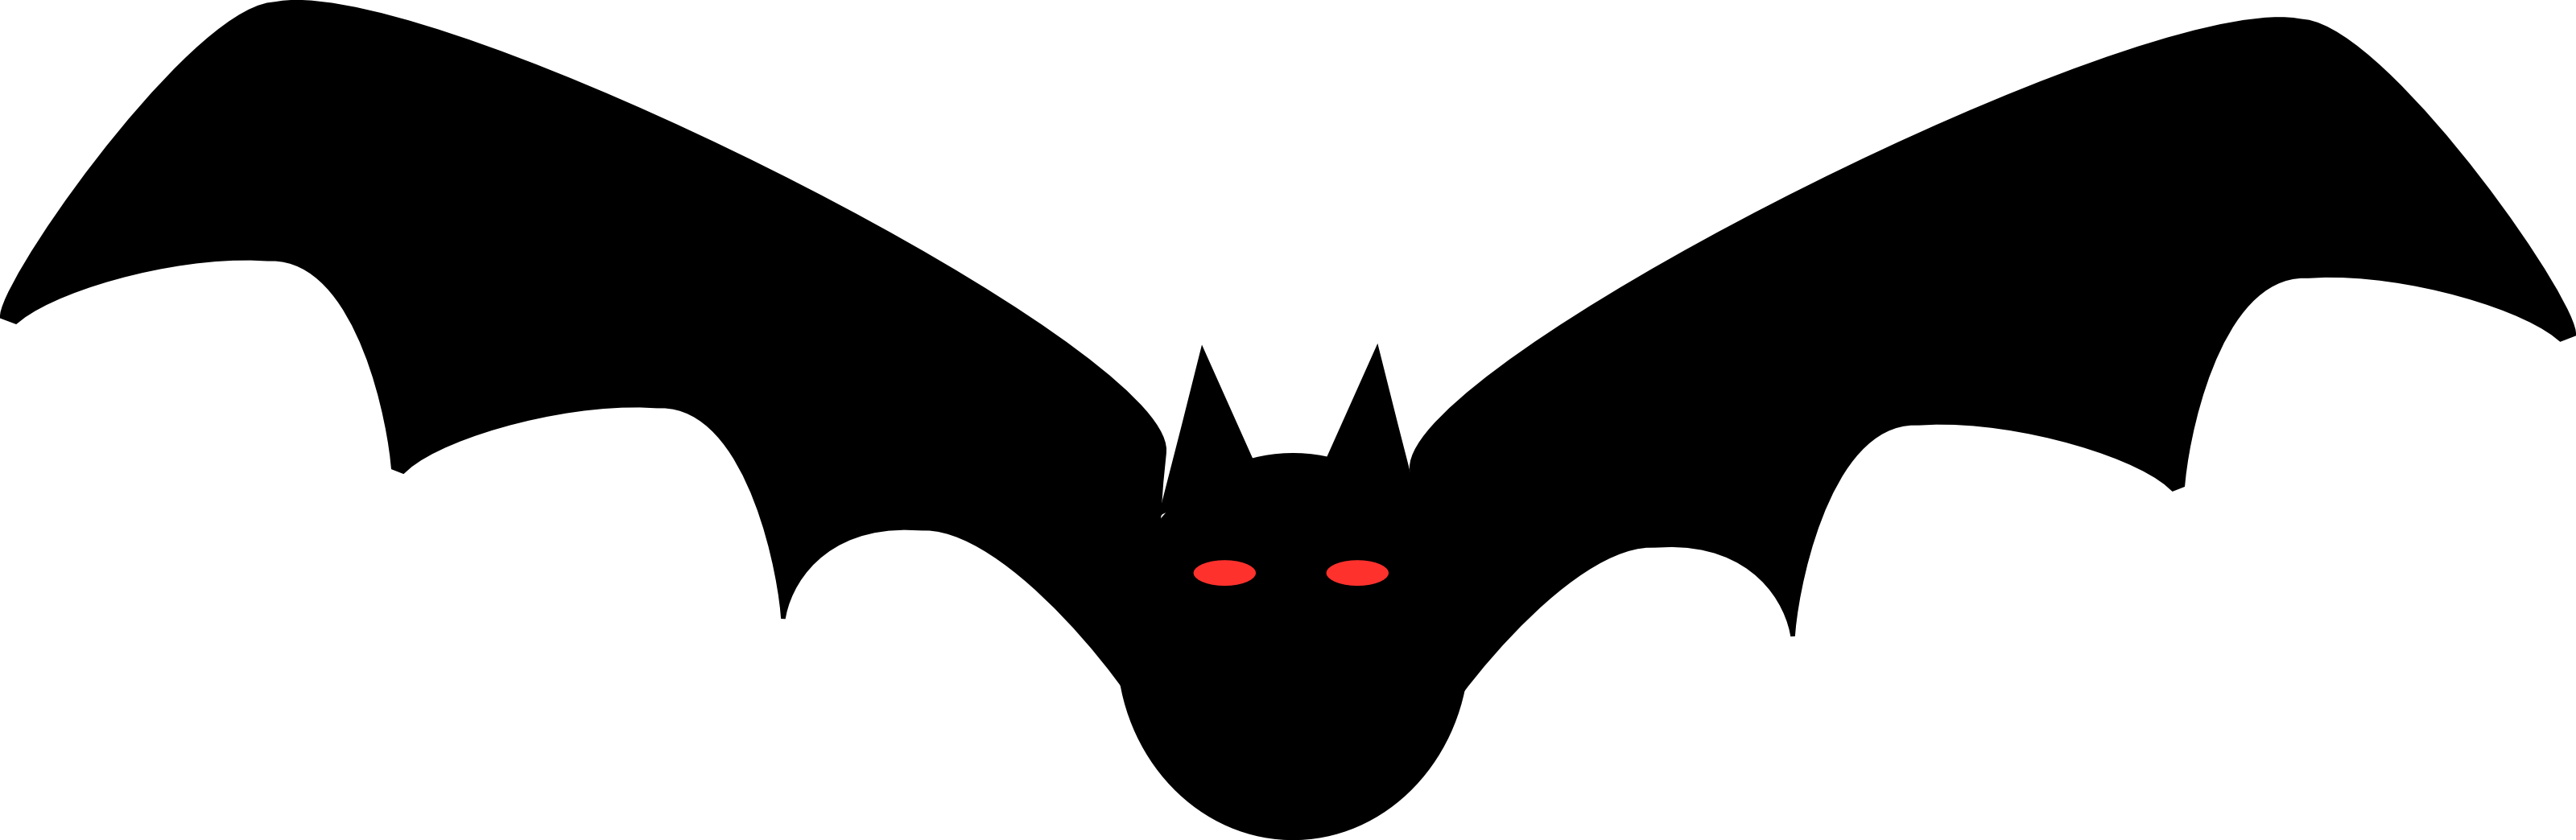 Bats clipart halloween vector stock Halloween Clip Art Free Printable | Clipart Panda - Free Clipart ... vector stock